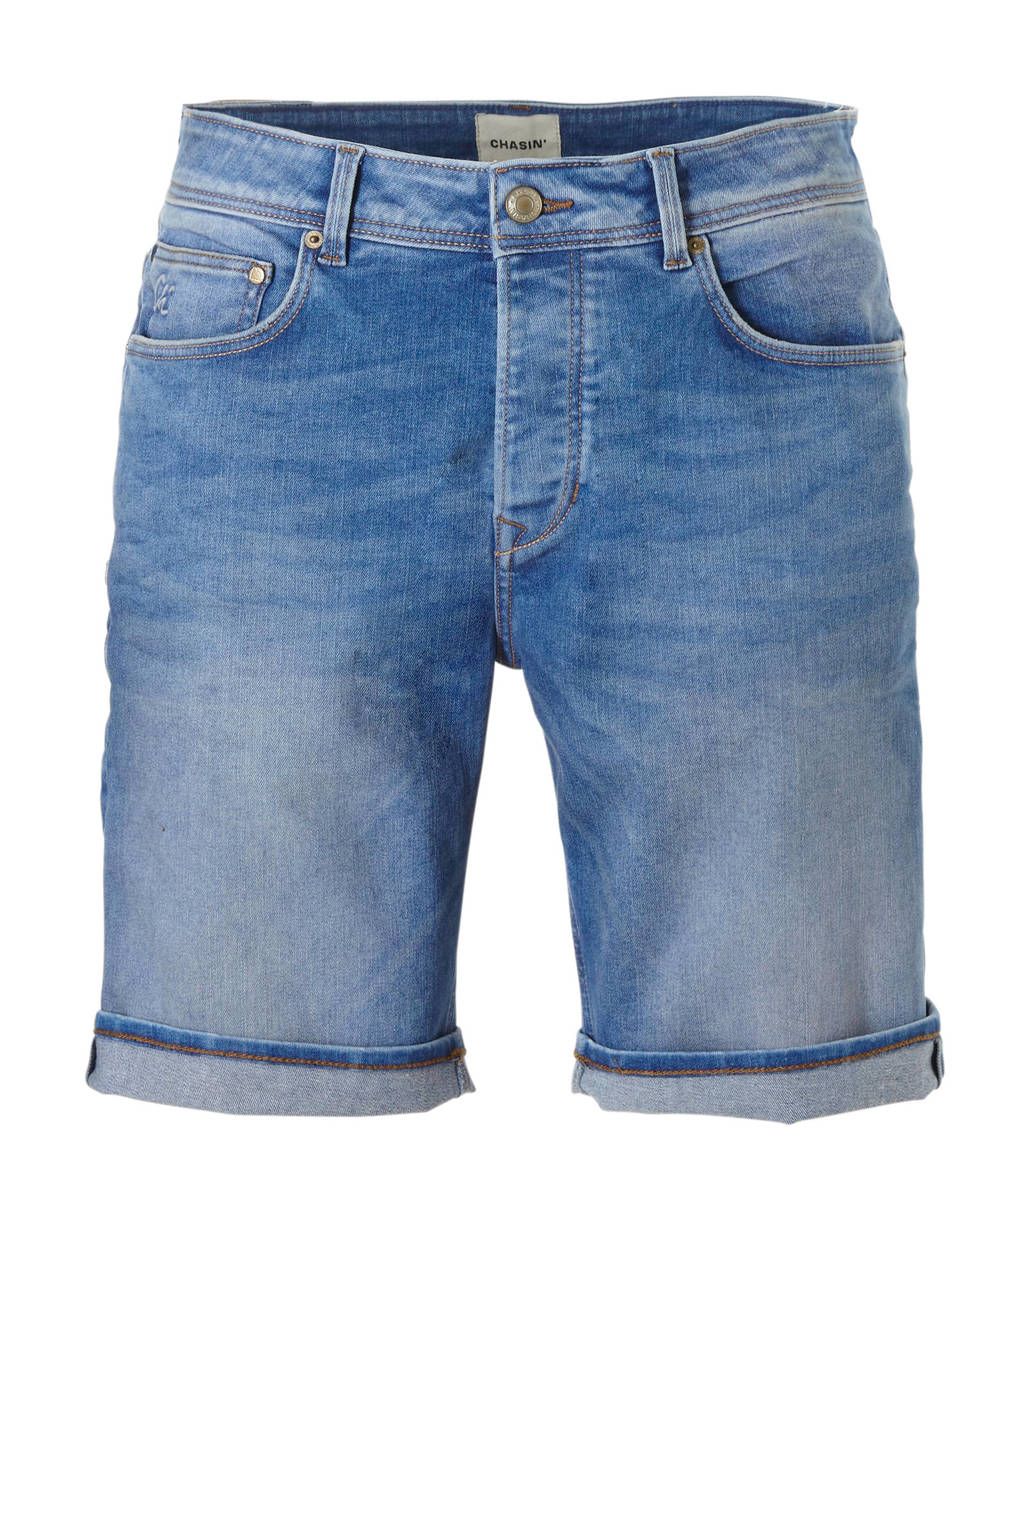 Chasin' tapered fit jeans short Ross, Blauw